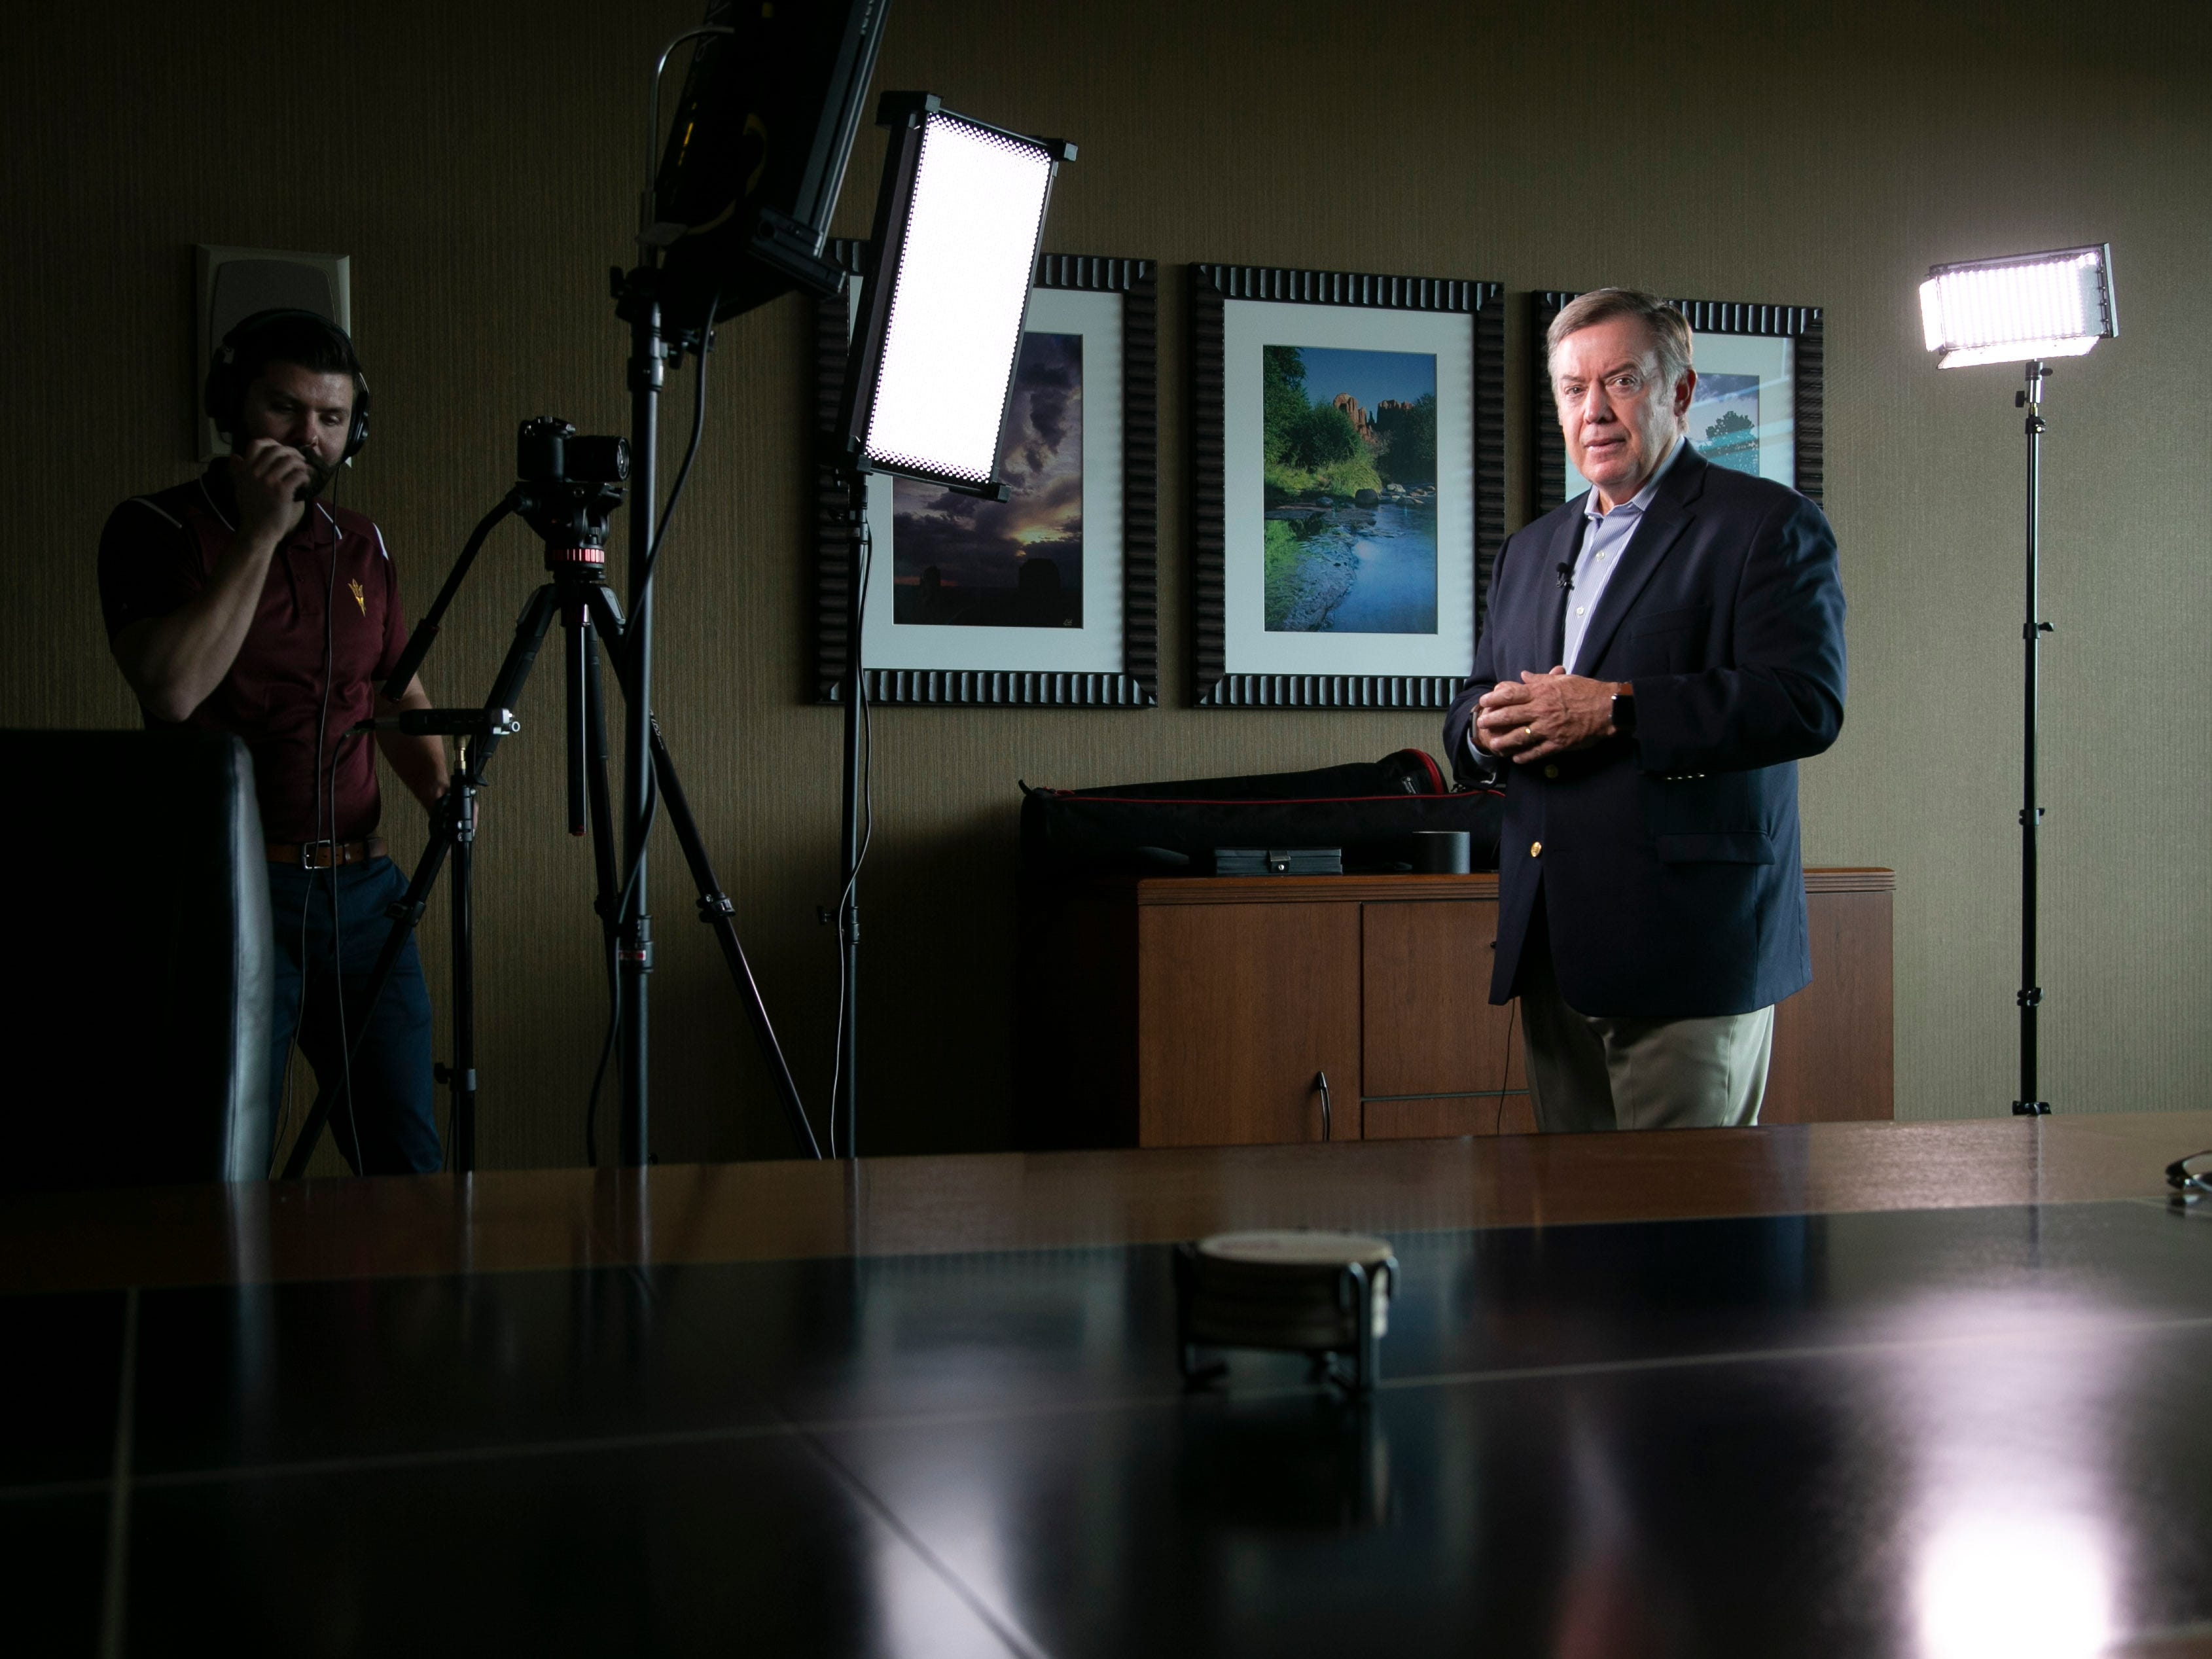 Michael Crow records footage for an ASU video segment on the Tempe campus on Oct. 16, 2018.